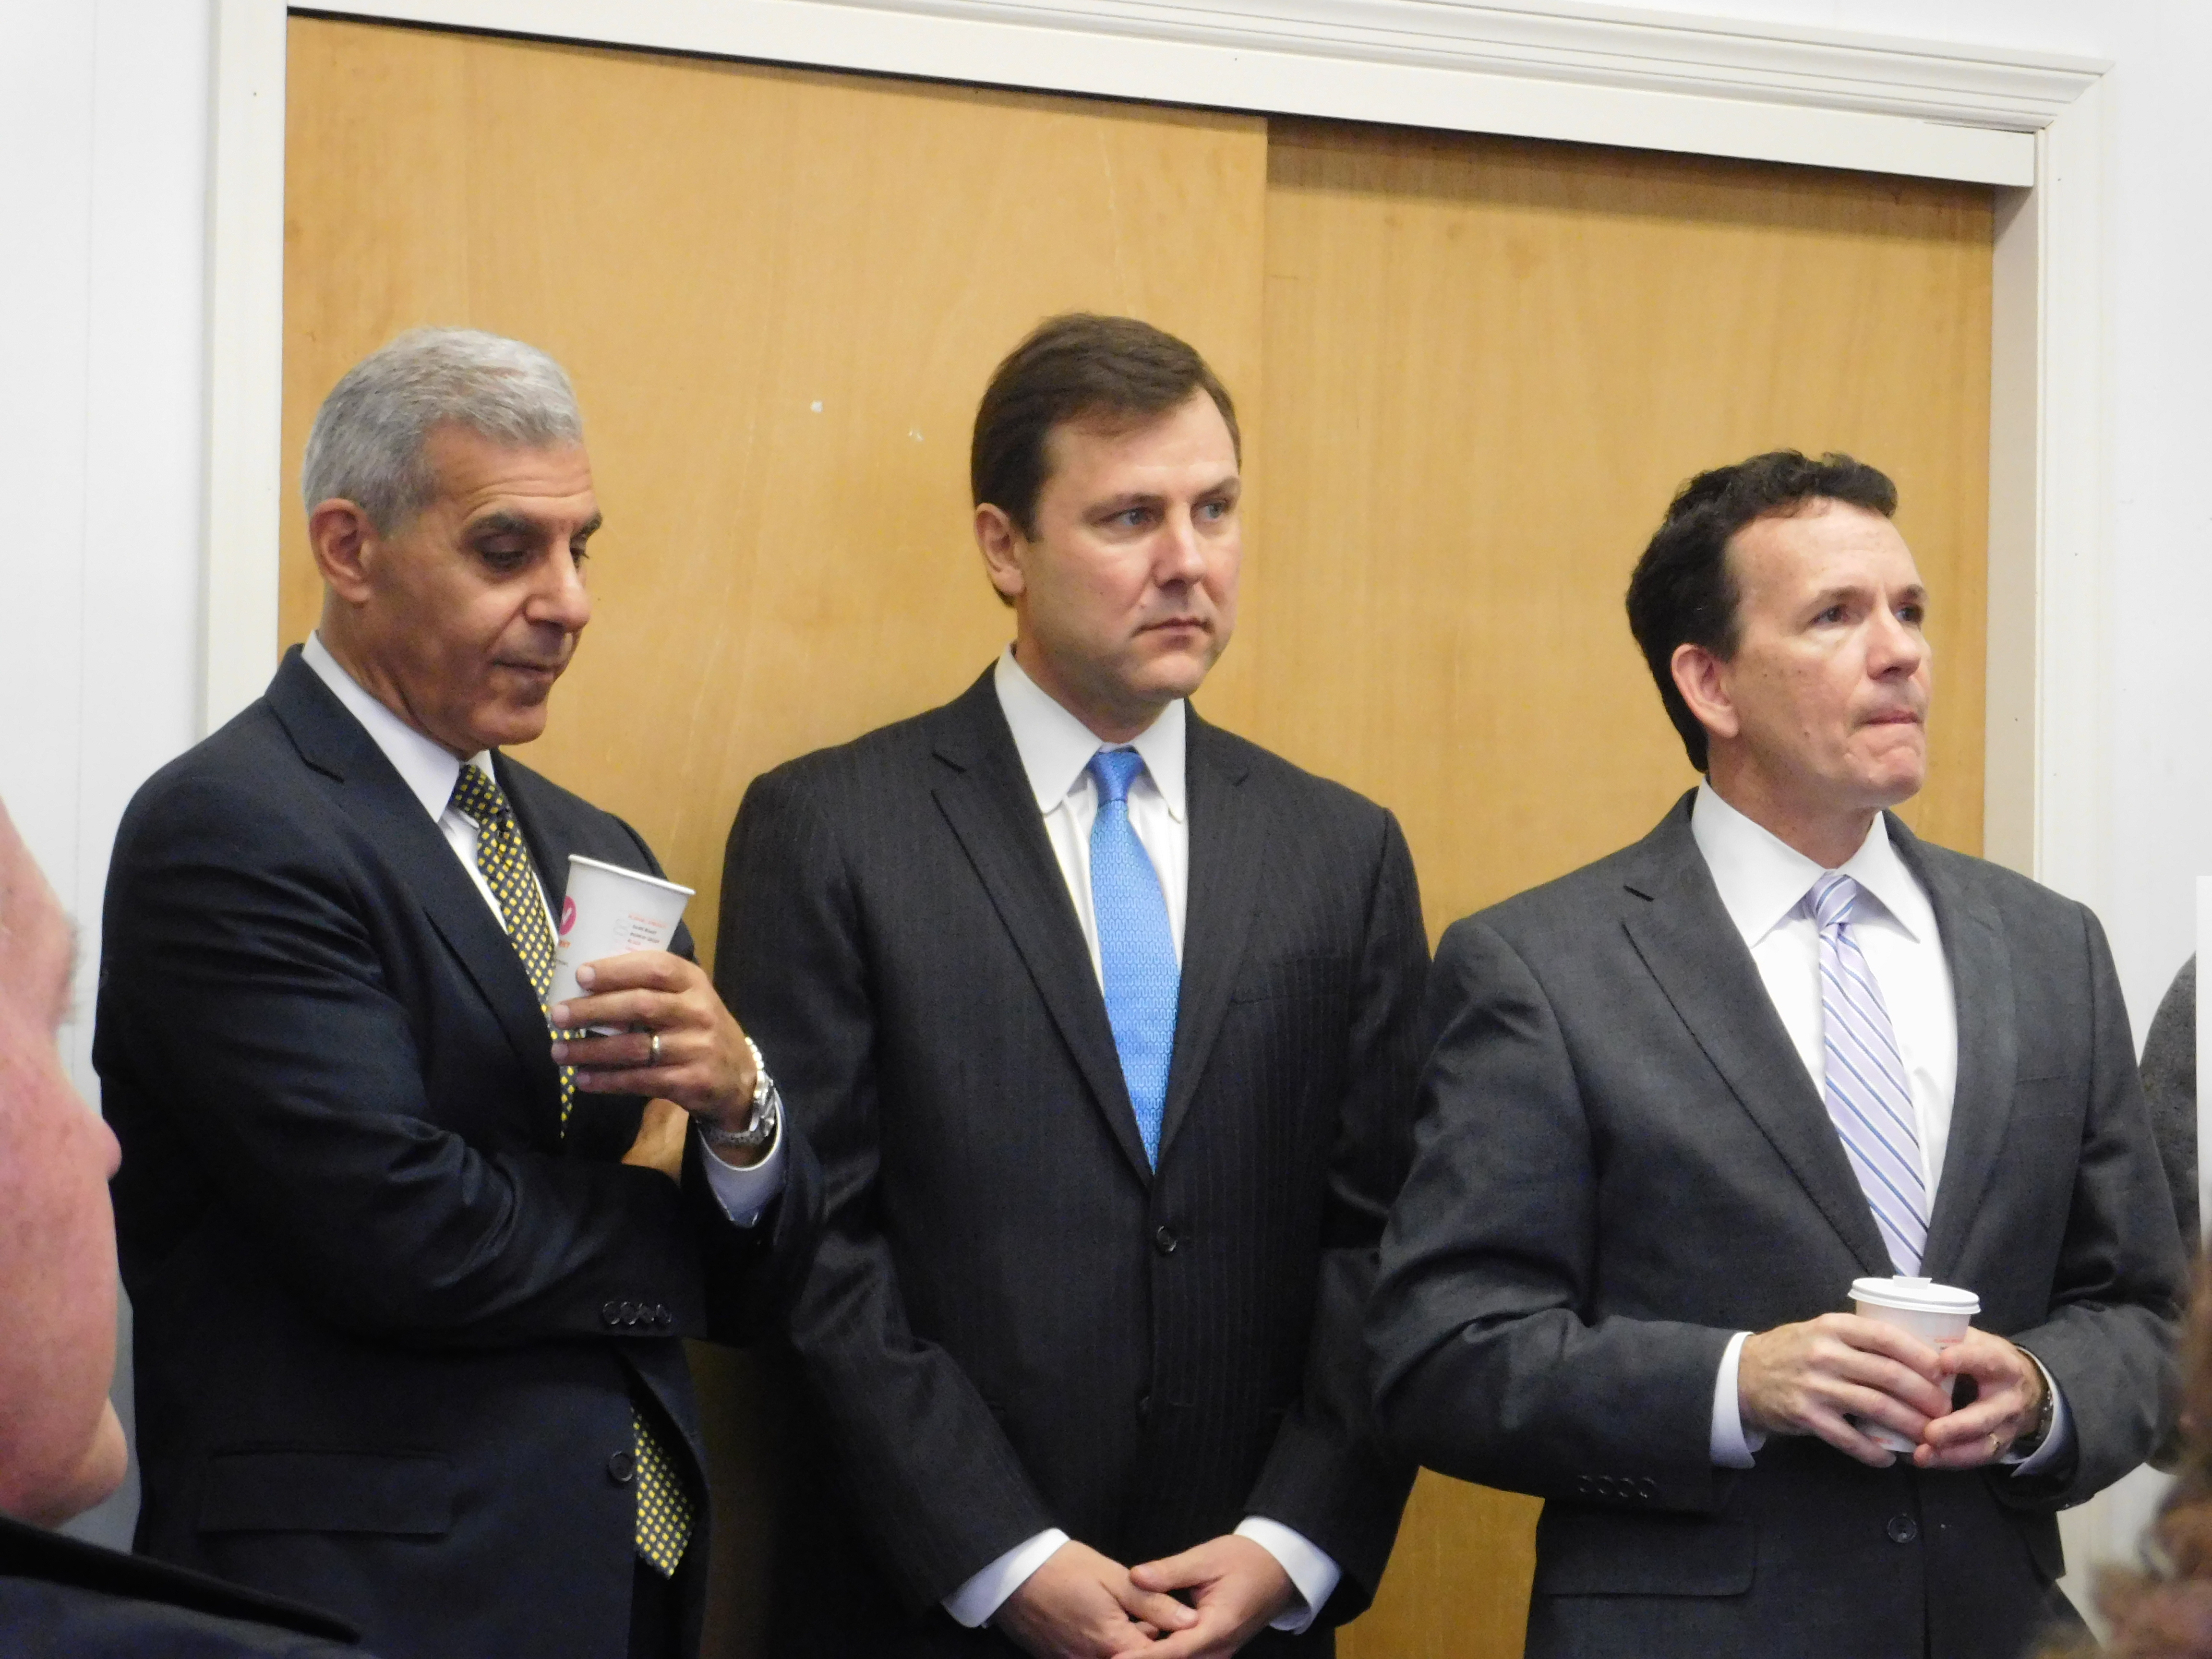 From left: Kyrillos, Kean and O'Scanlon.